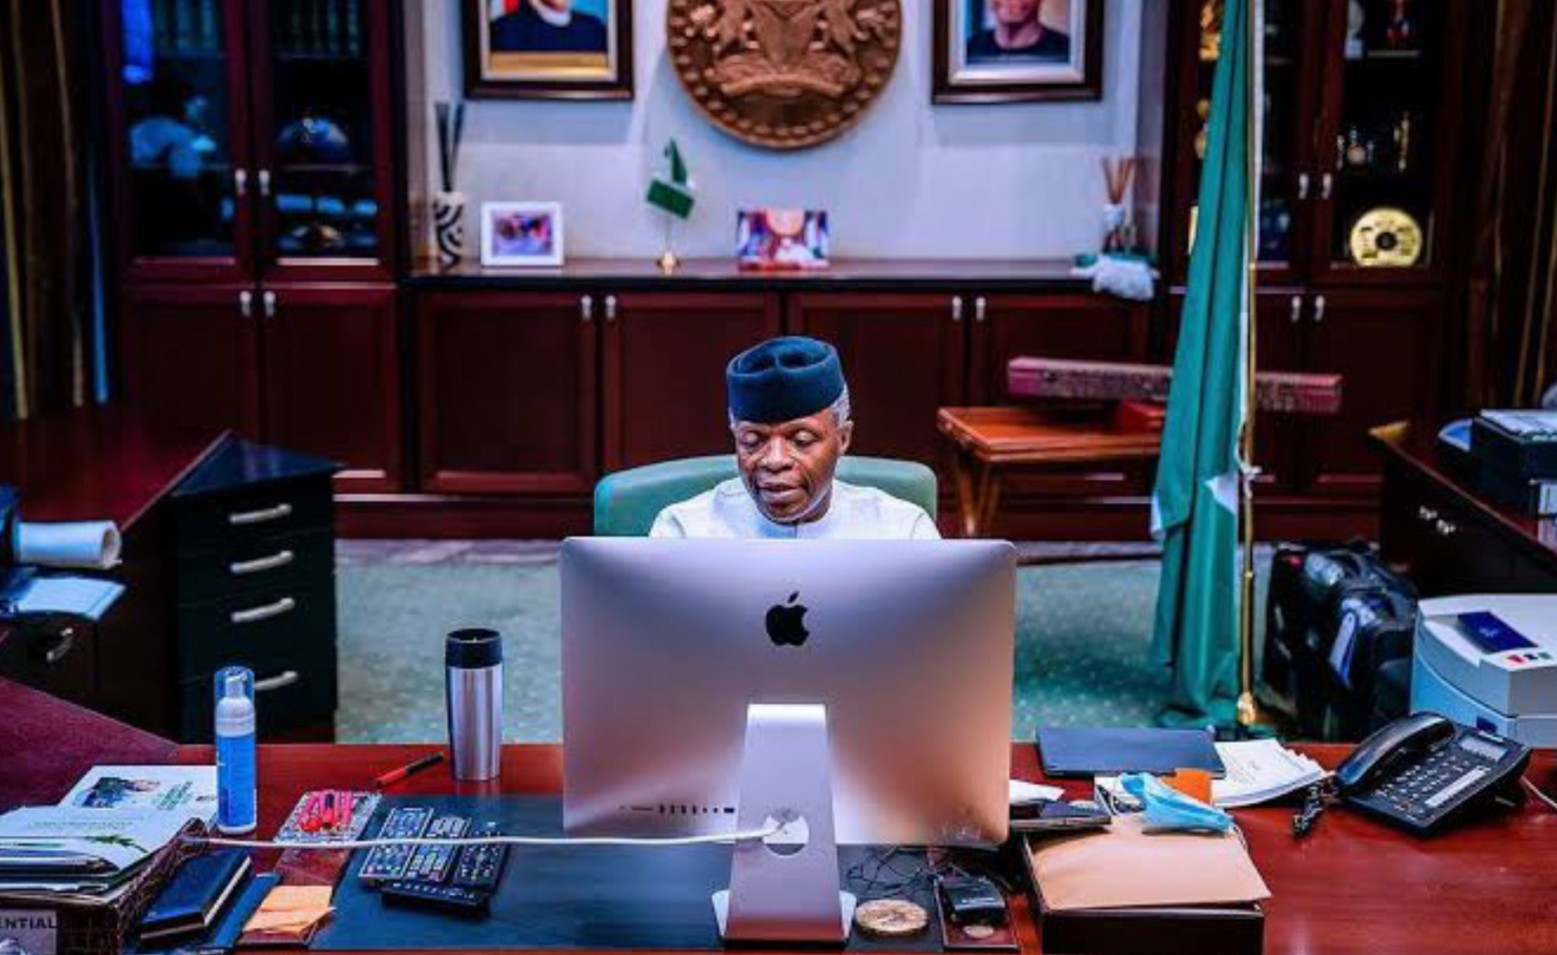 FG to restructure SME loans, says Osinbajo